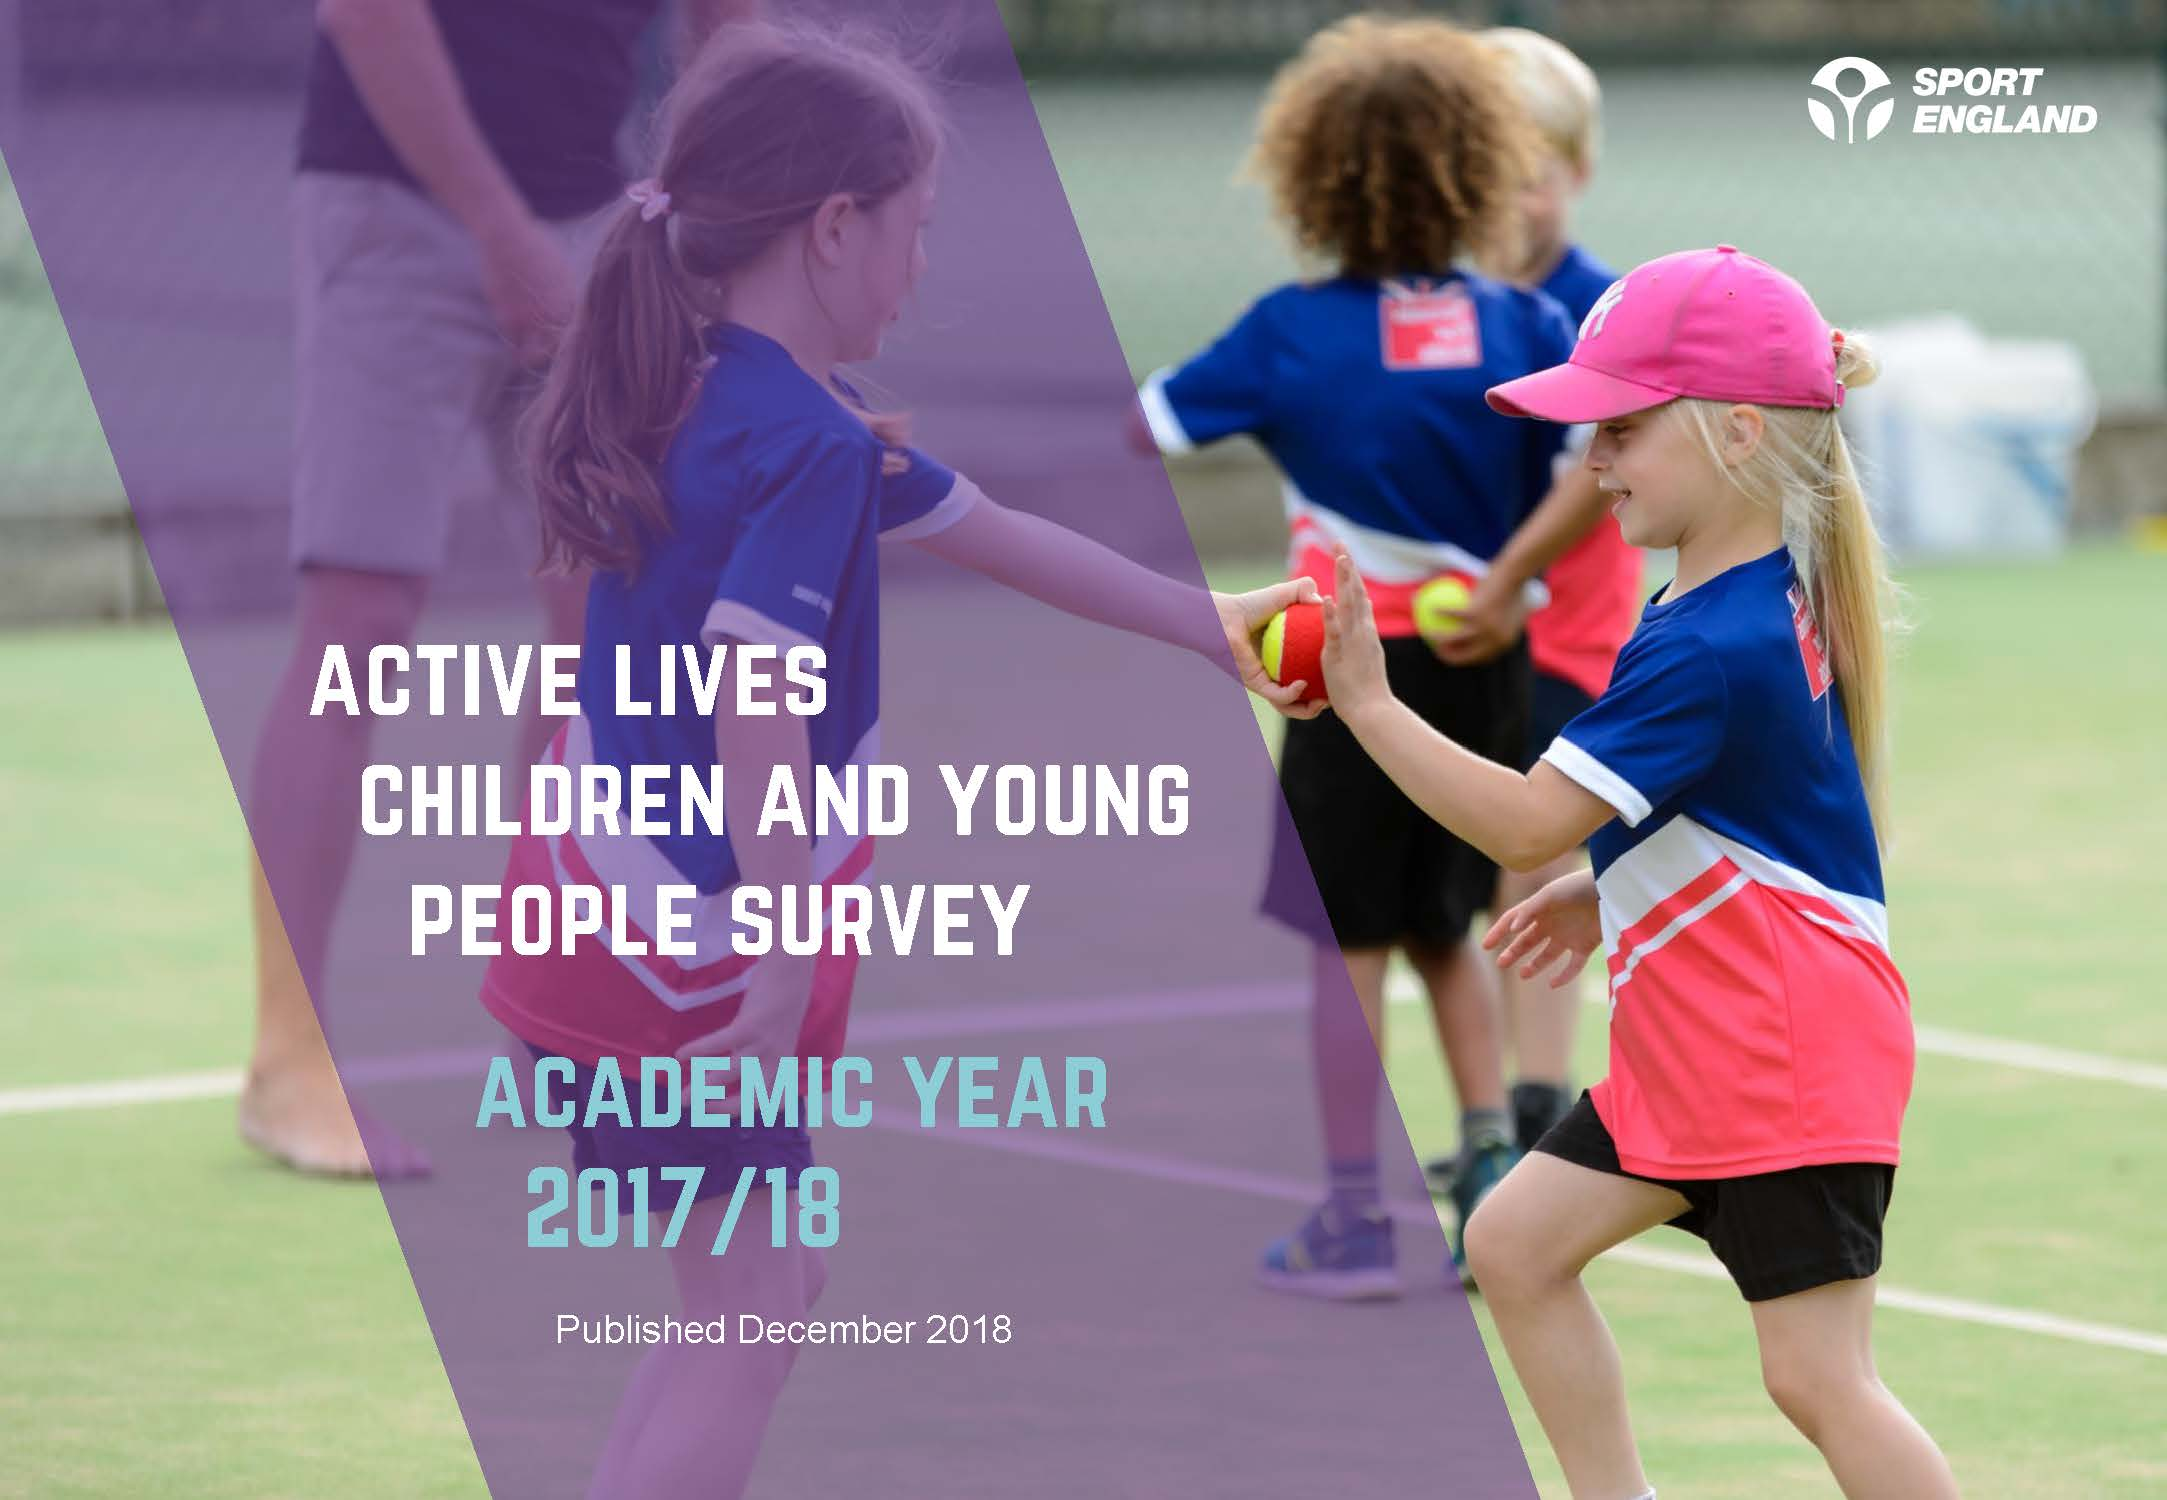 National - active-lives-children-survey-academic-year-17-18 1.jpg